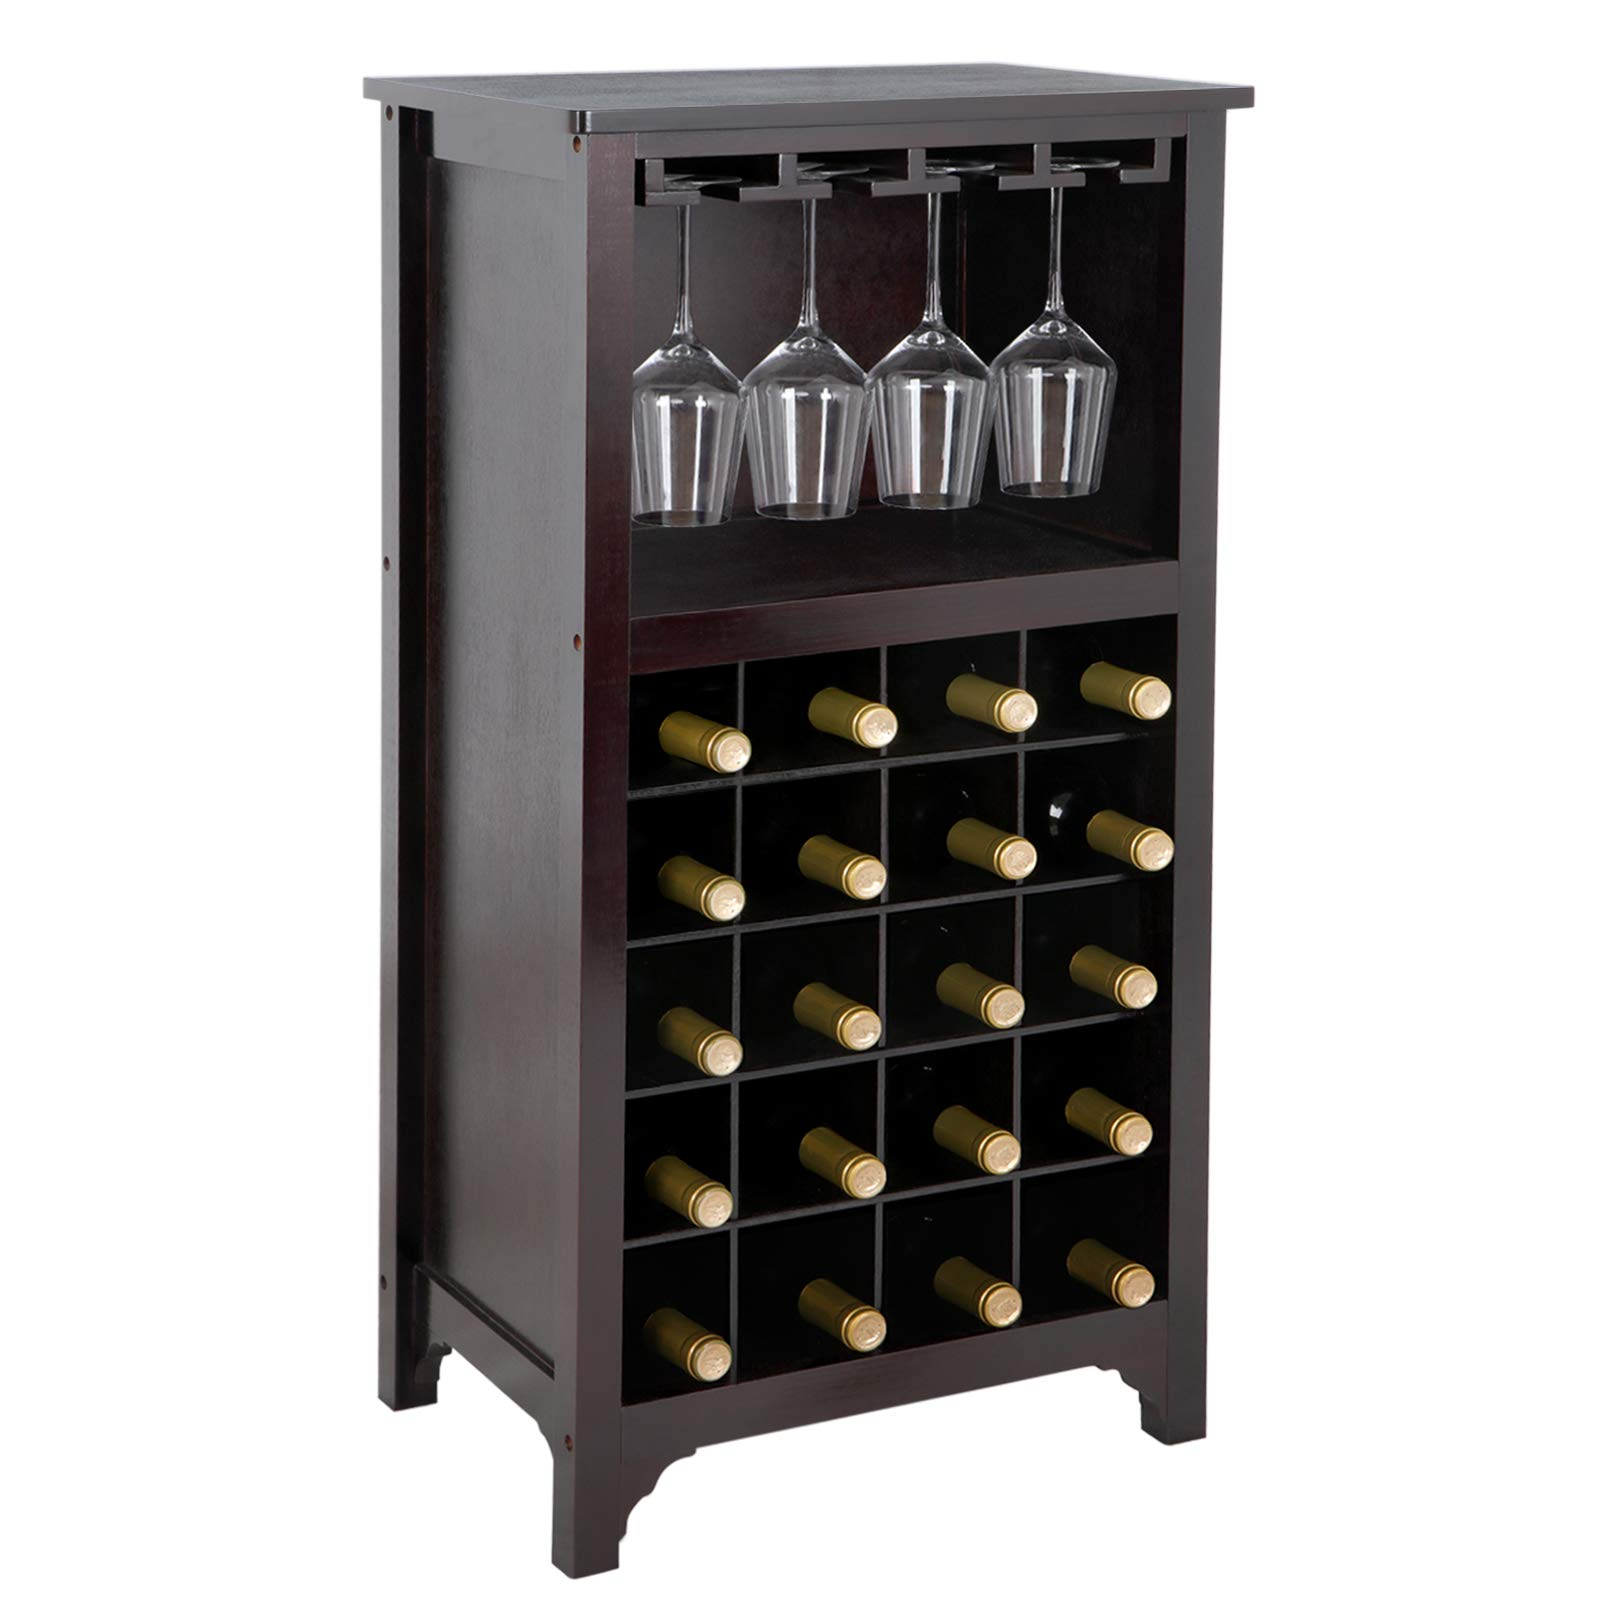 SUPER DEAL Wood Wine Cabinet Modular Wine Rack 20 Bottle Holder Display Storage Shelf with Glass Holder Free Standing Wine Rack, Espresso